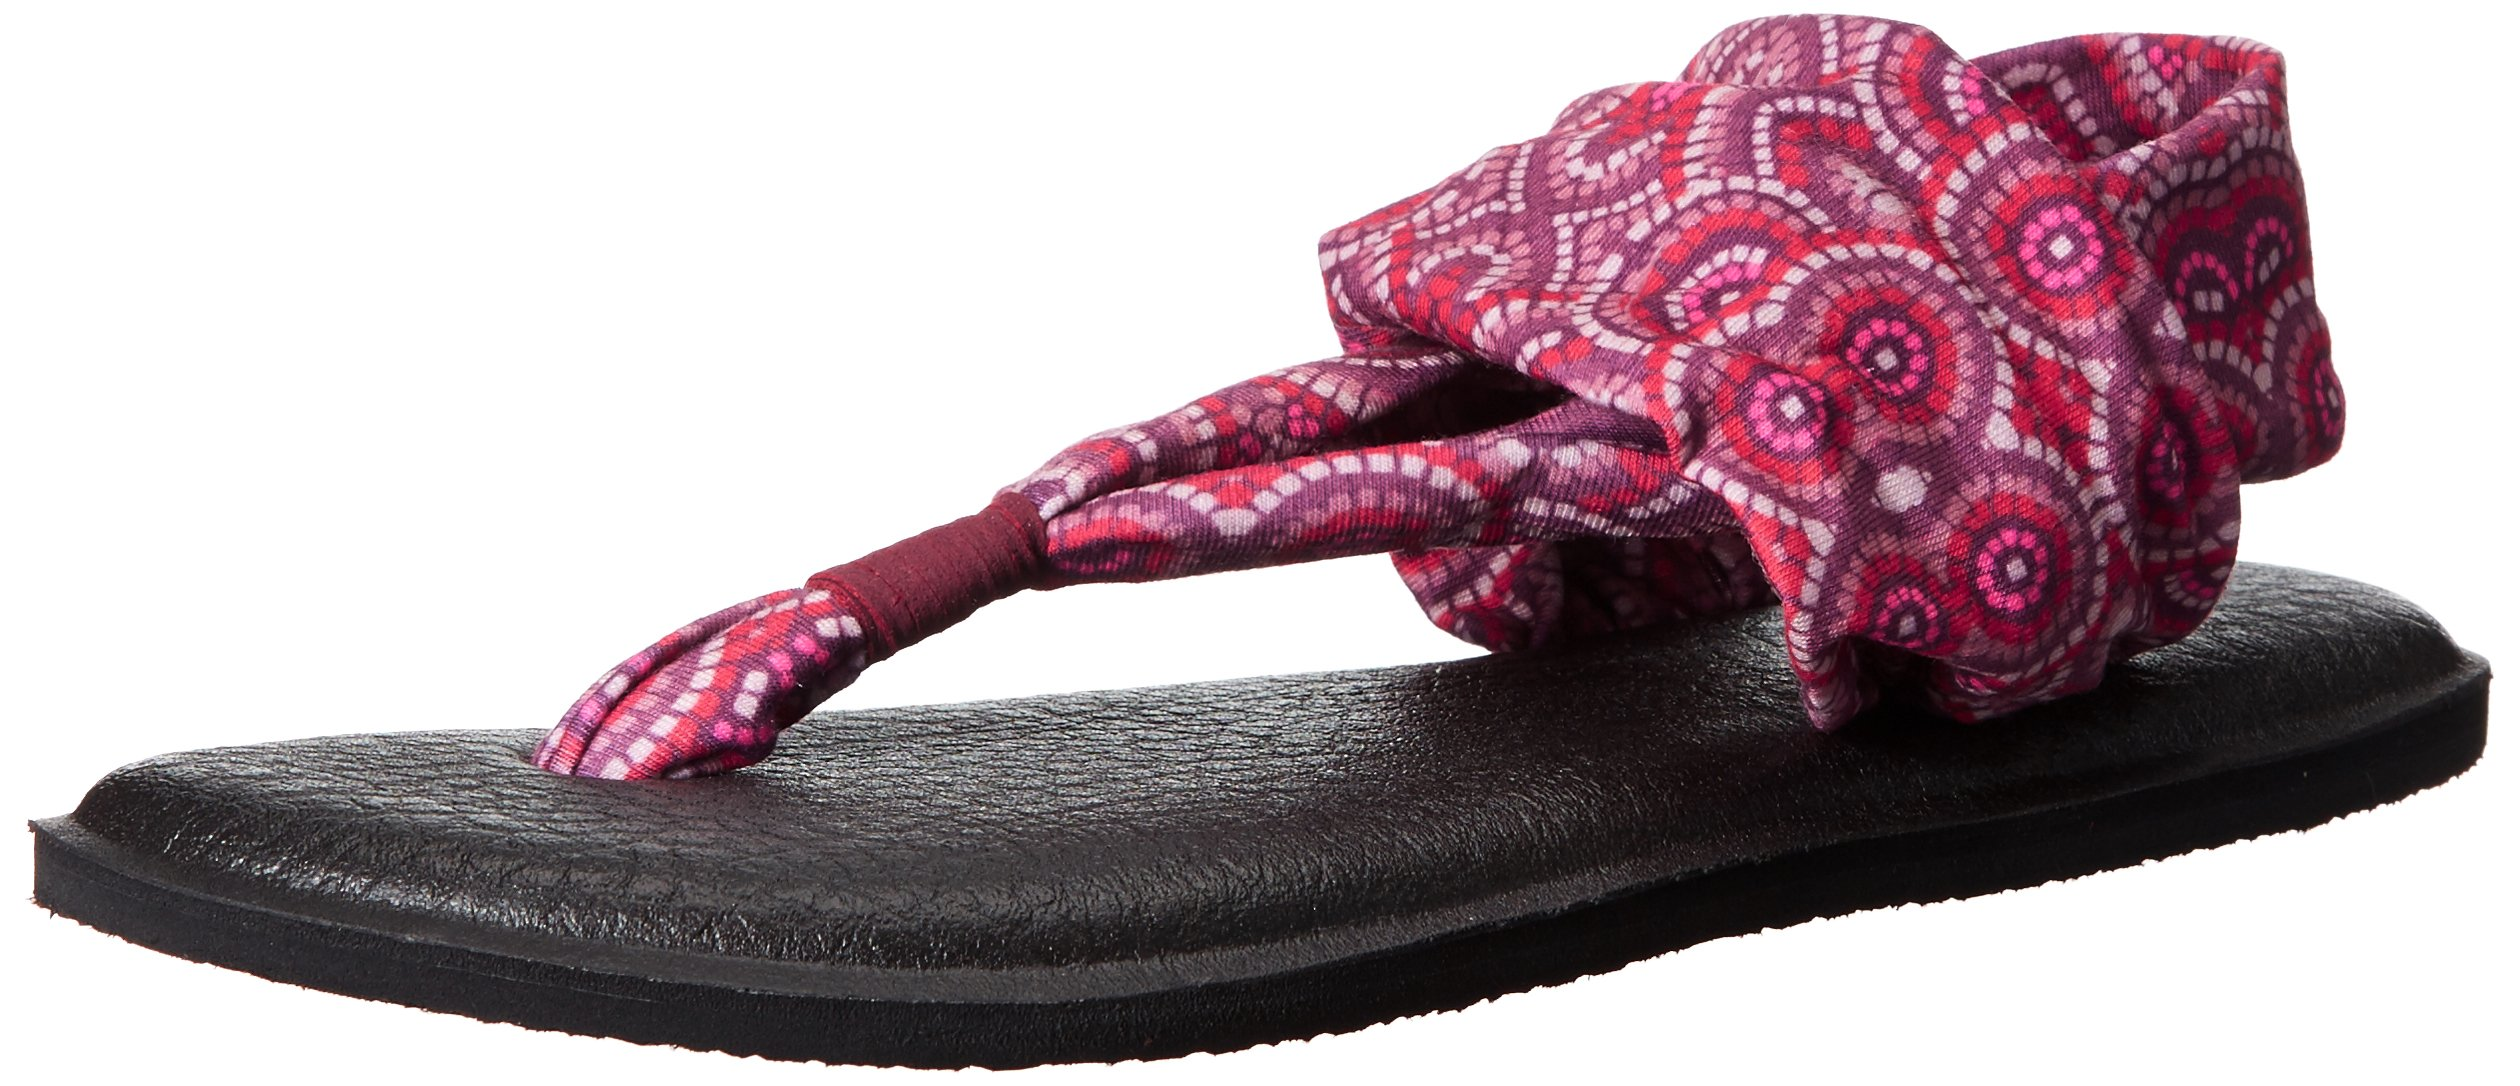 Sanuk Women's Yoga Sling 2 Prints Flip Flop, Burgundy Multi Radio Love, 8 M US